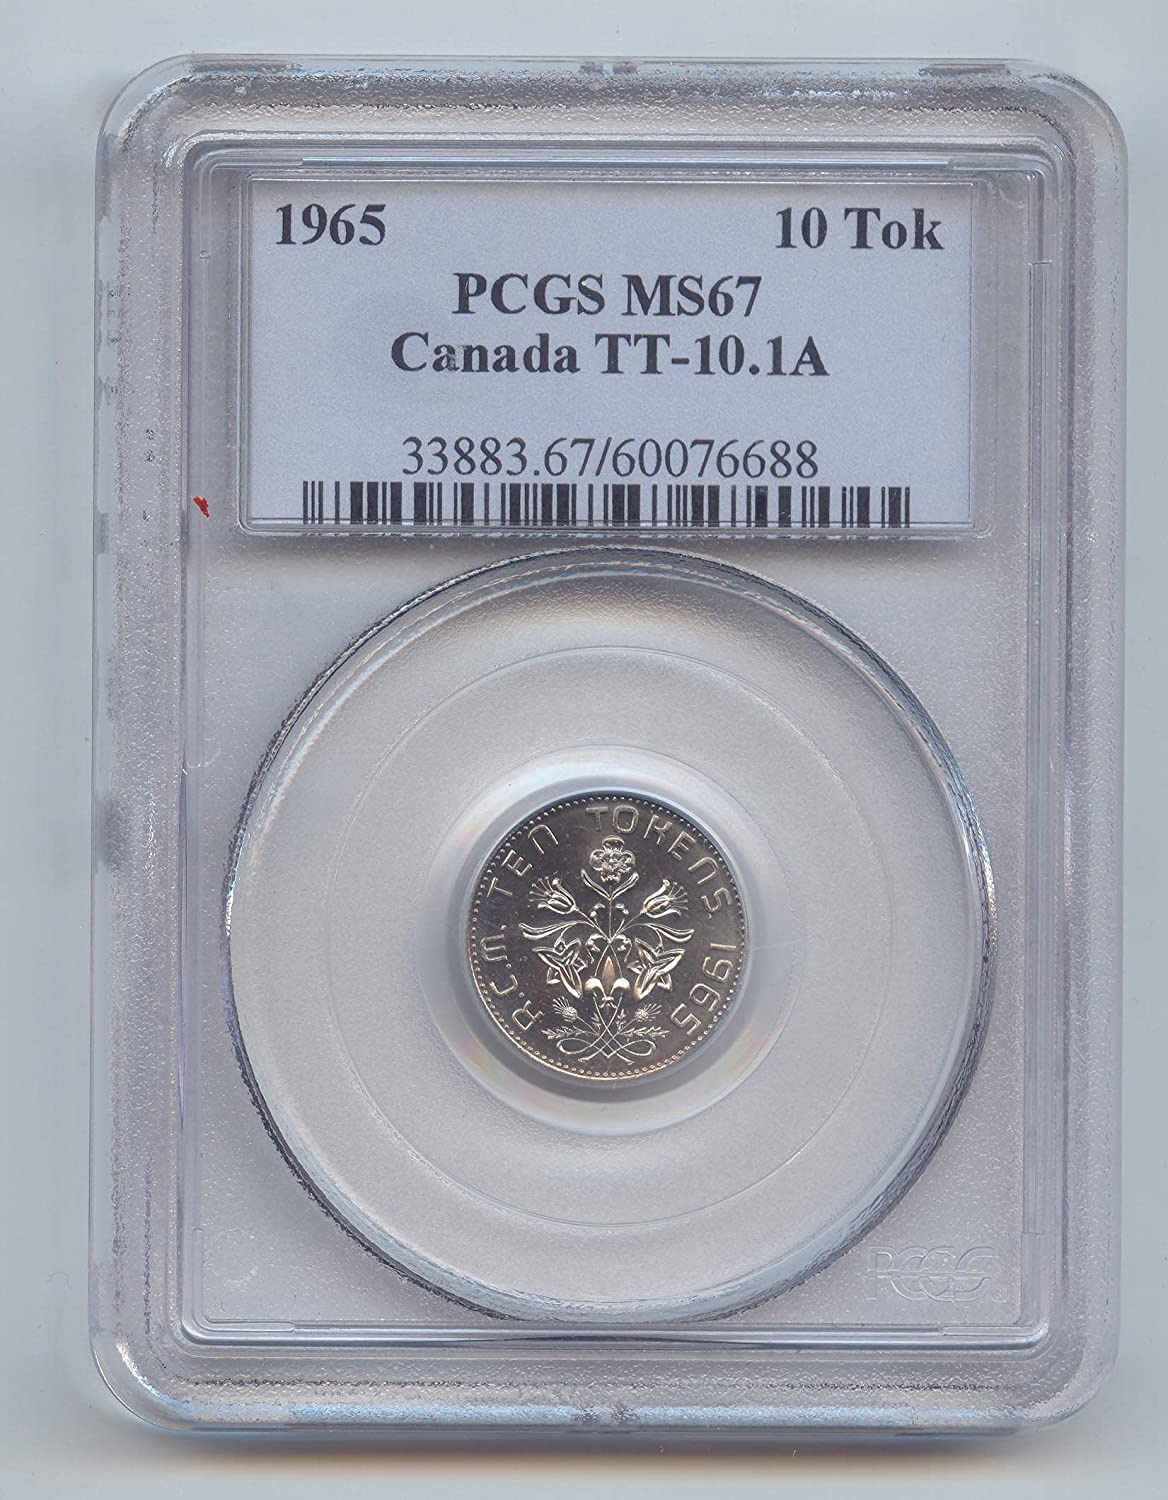 1965 service CA Canada Test Max 90% OFF Token TT-10.1A Cents 10 PCGS MS-67